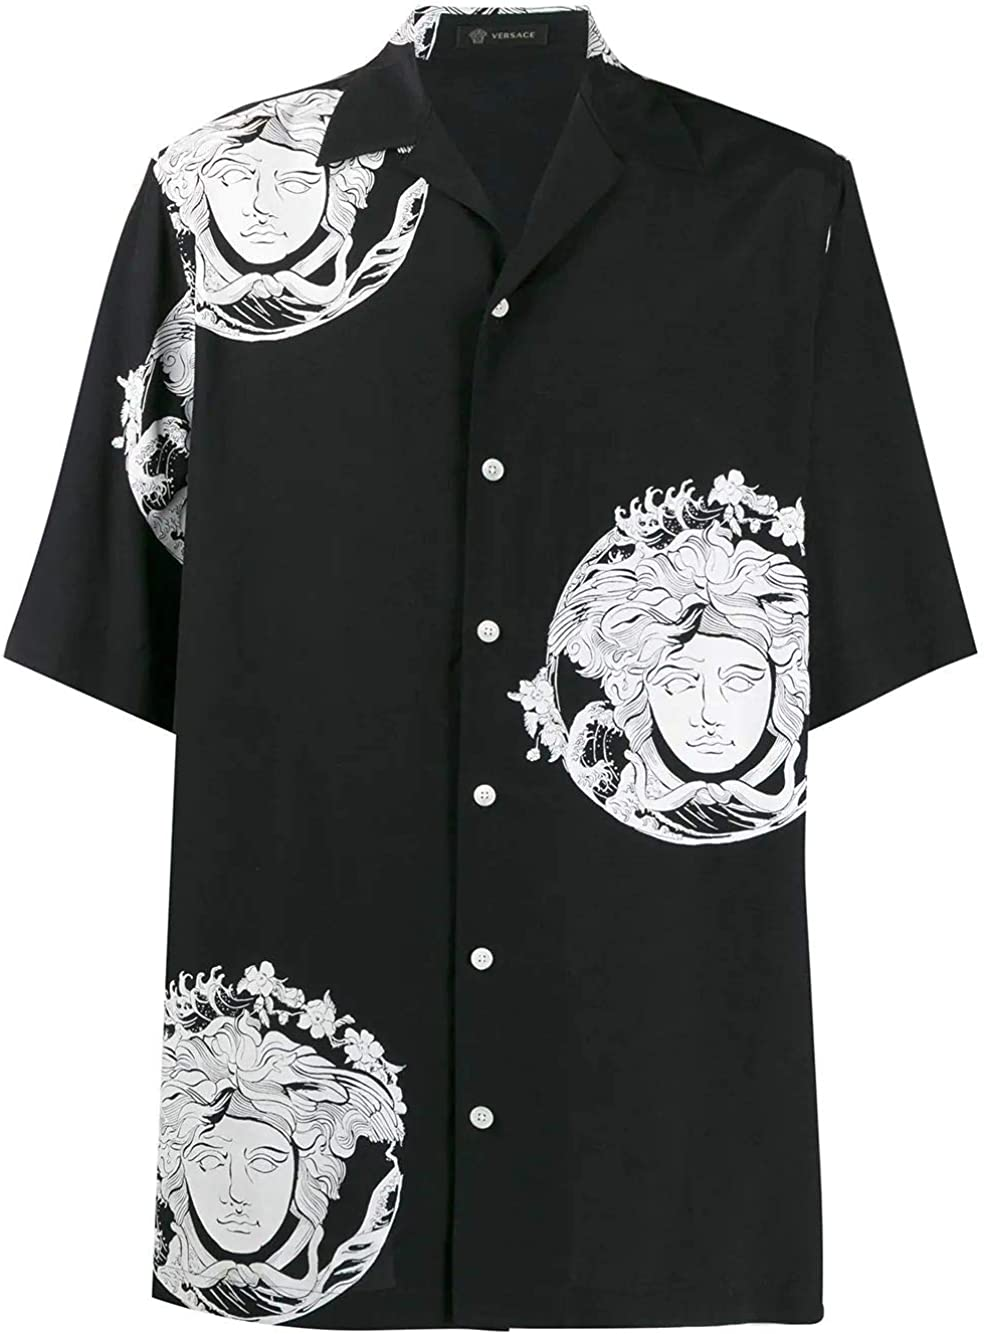 Versace Luxury Fashion Hombre A81630A230635A71R Negro Camisa ...